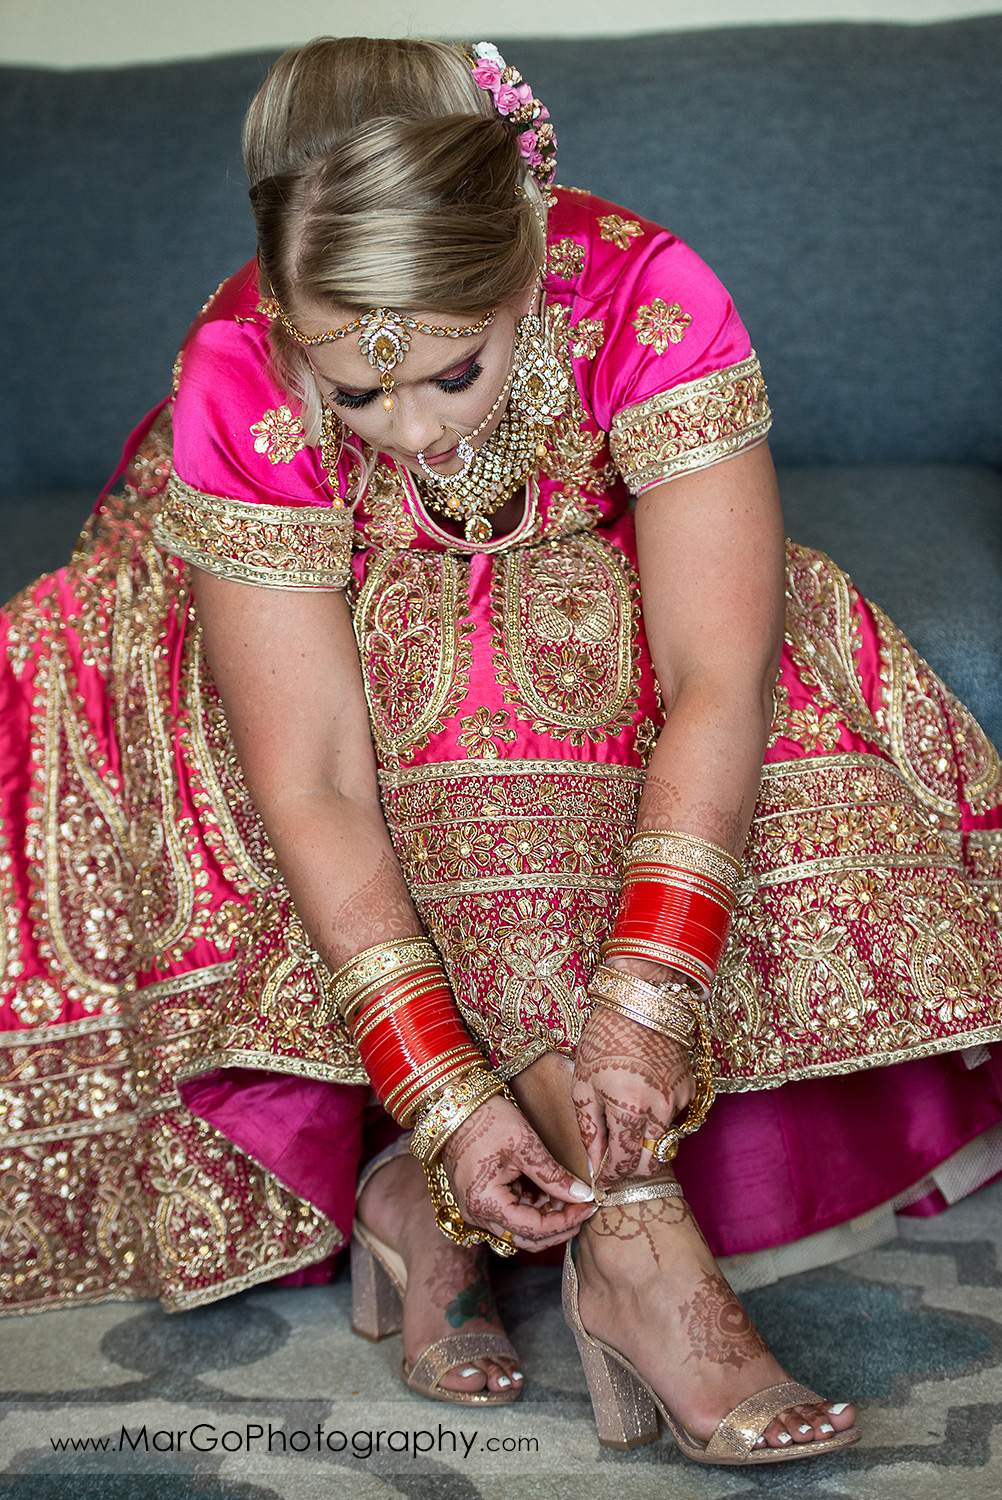 Indian bride in pink and golden dress putting on golden wedding shoes